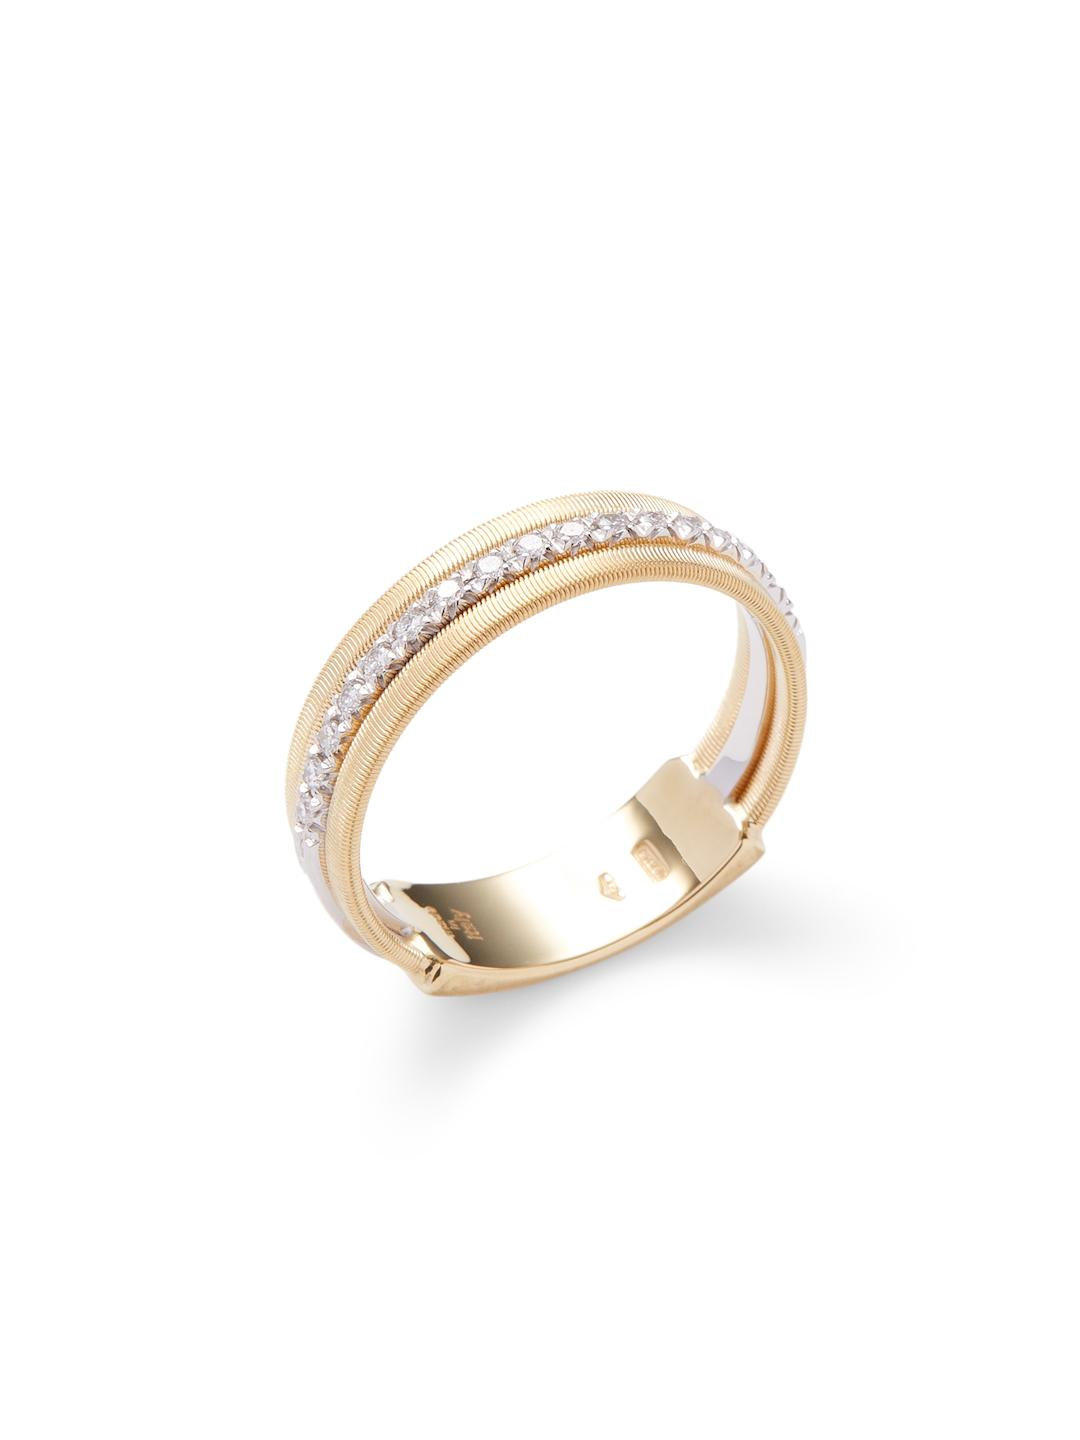 Marco Bicego Masai 18K Gold Stacked Ring with Diamond Stations, Size 7